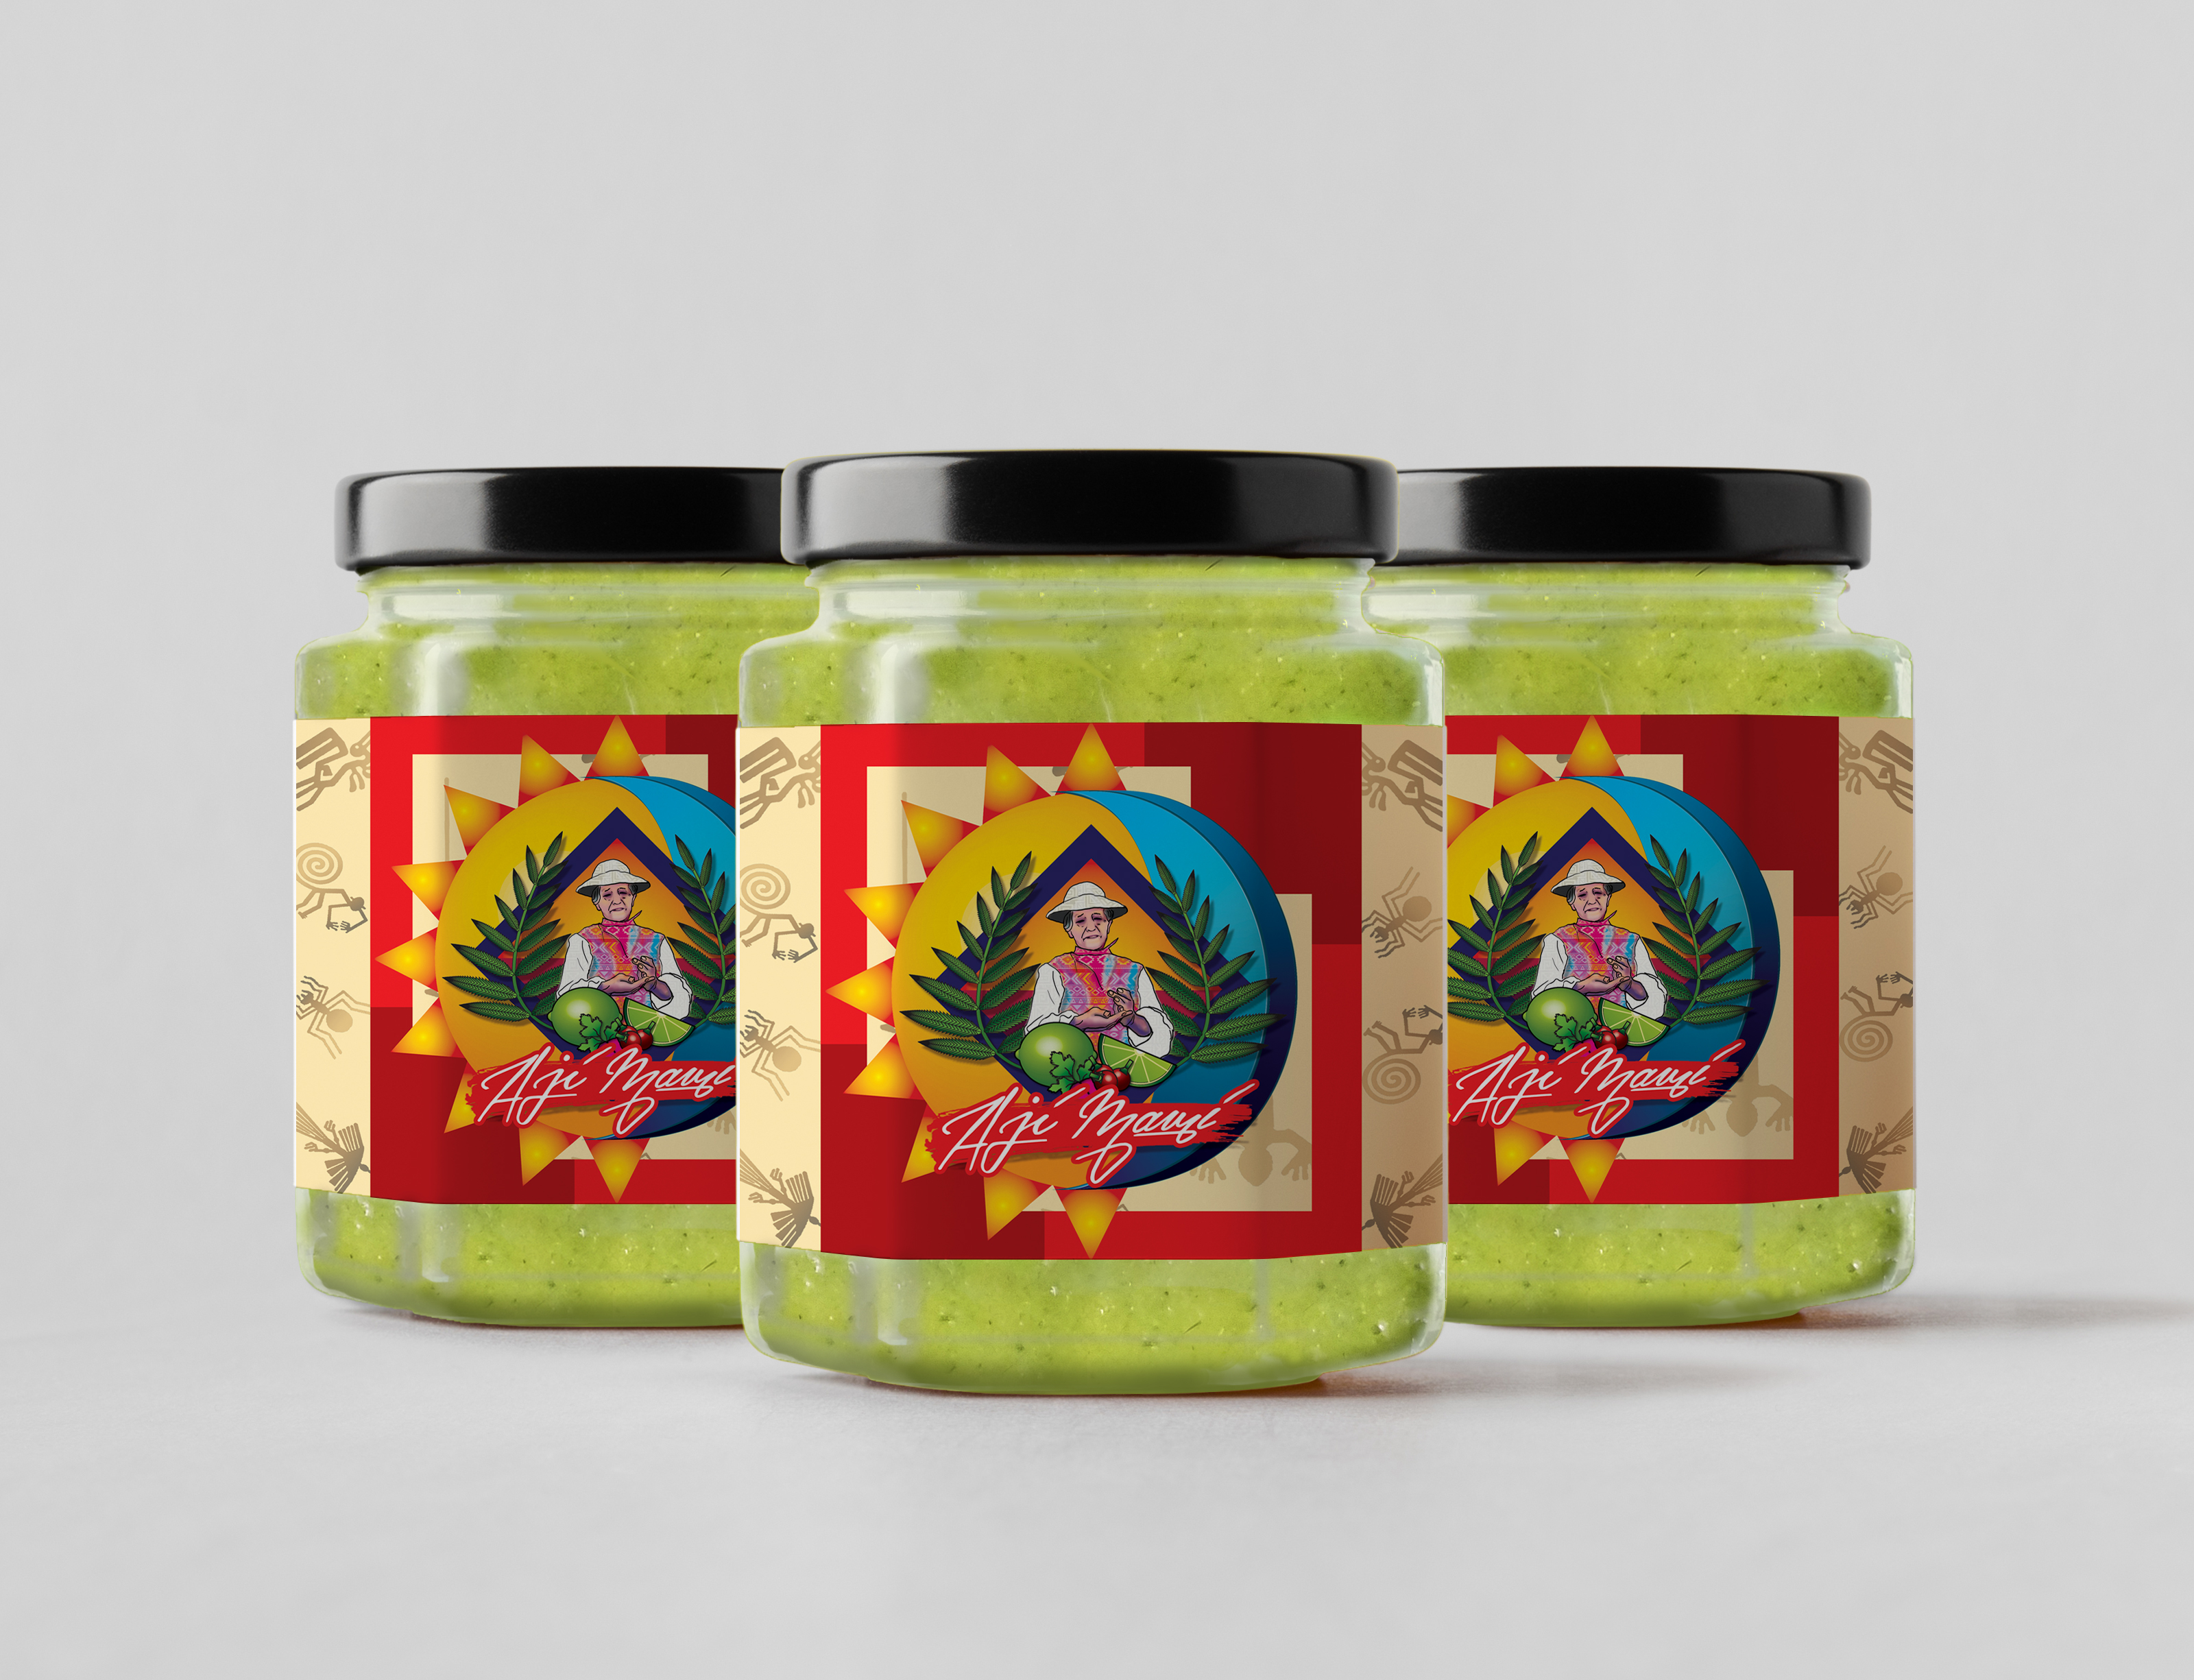 Aji Mami Packaging